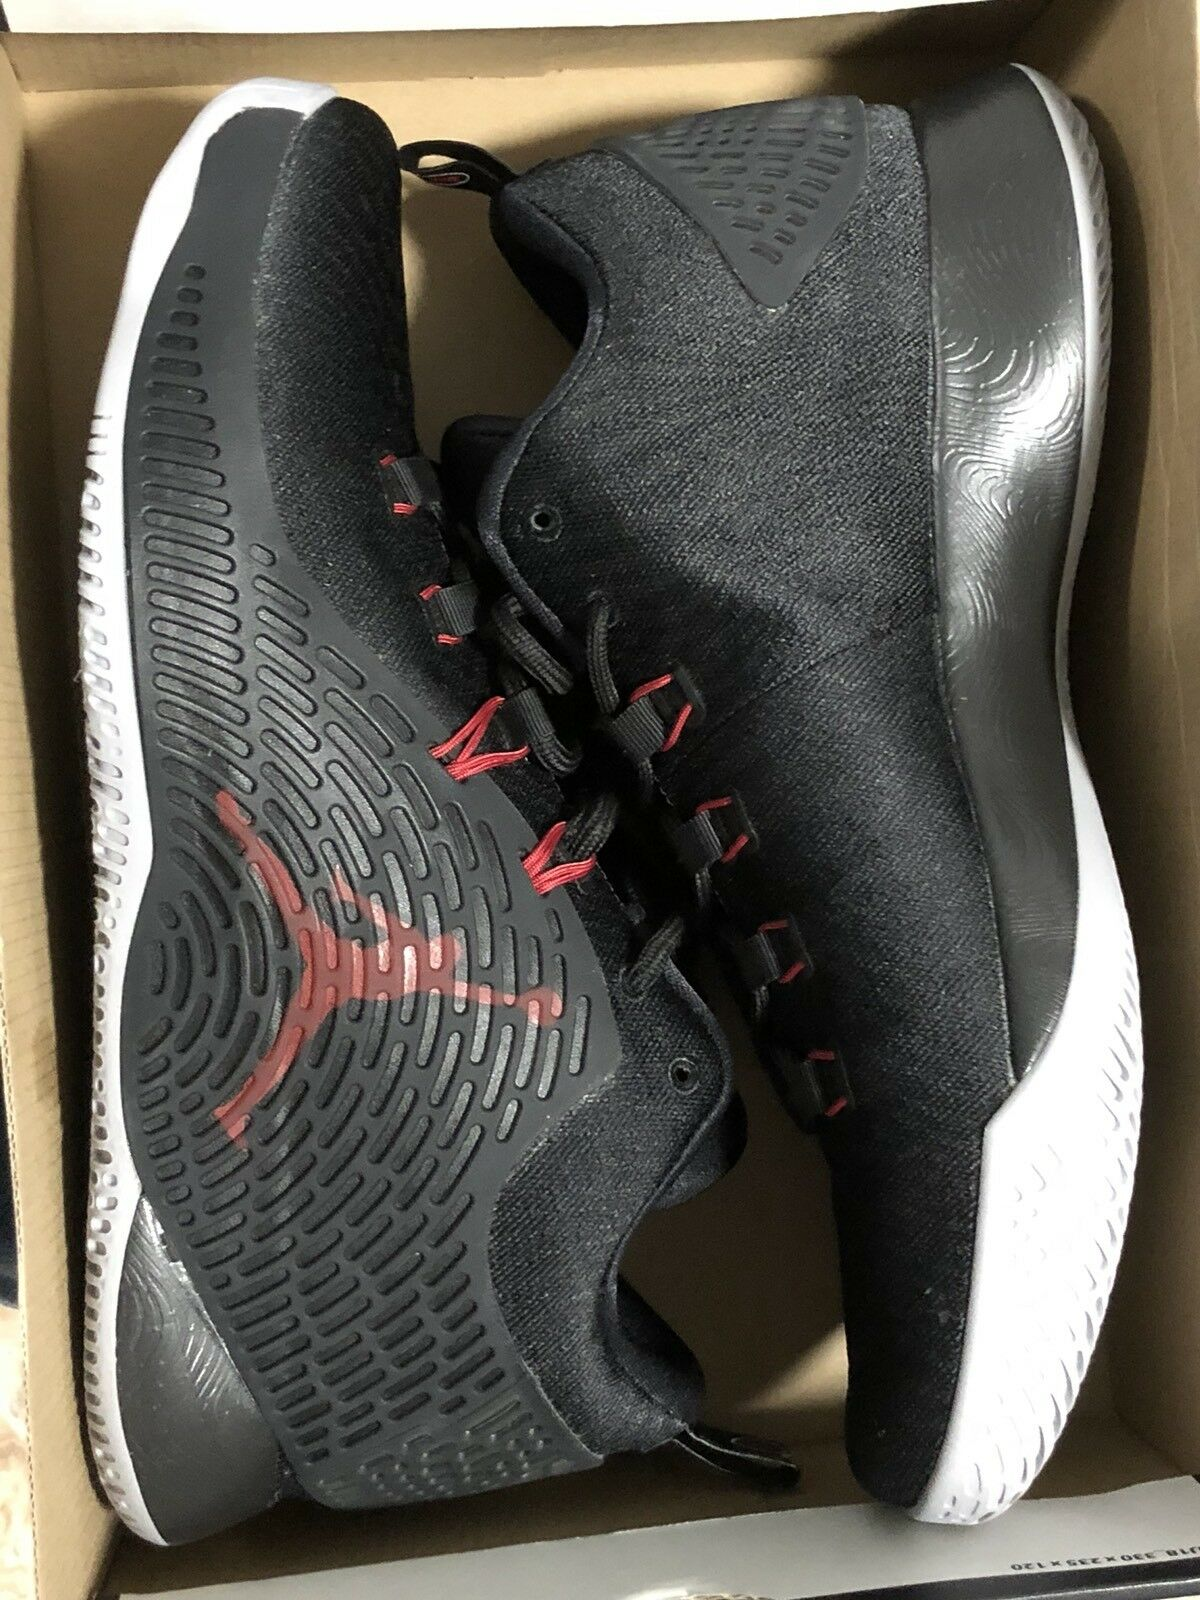 Nike Air Jordan CP3.X Men's Basketball shoes Black Gym Red Wolf Grey Size 11.5